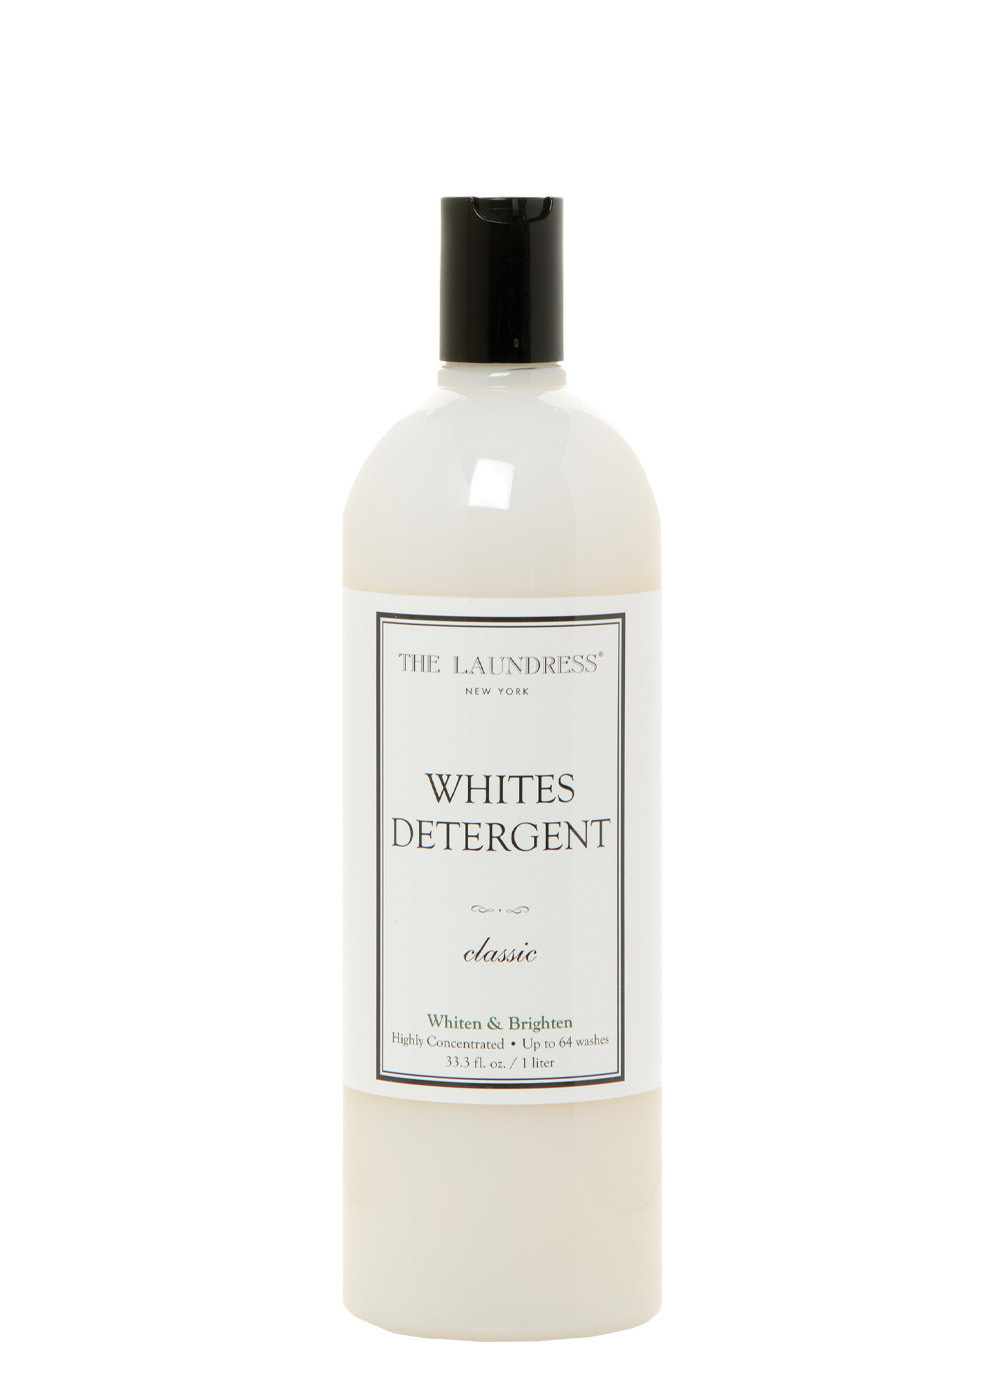 Whites Detergent by The Laundress-1